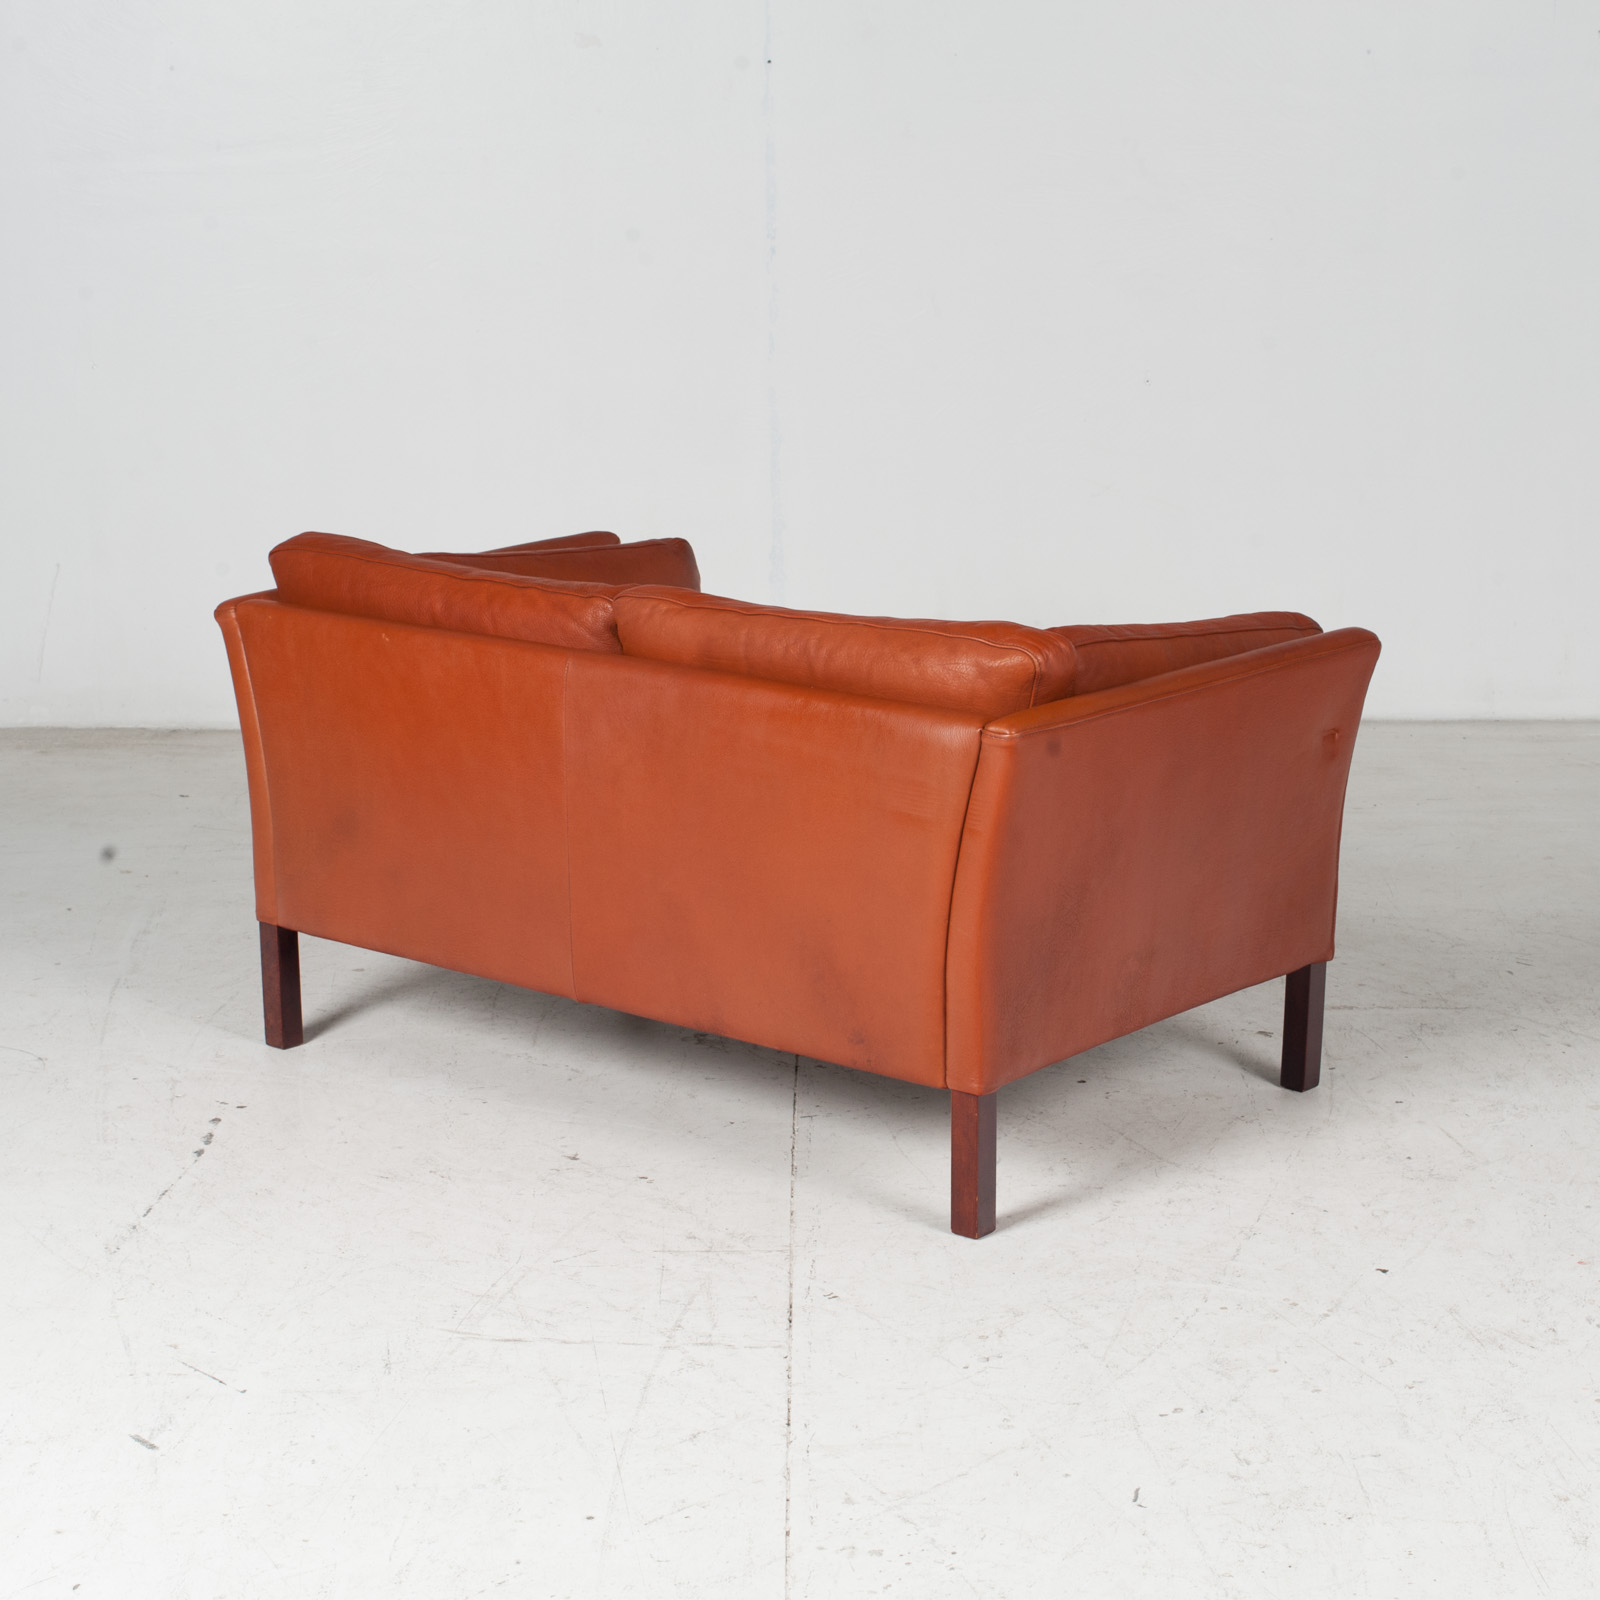 2 Seat Sofa By Stouby In Tan Leather, 1960s, Denmark 7